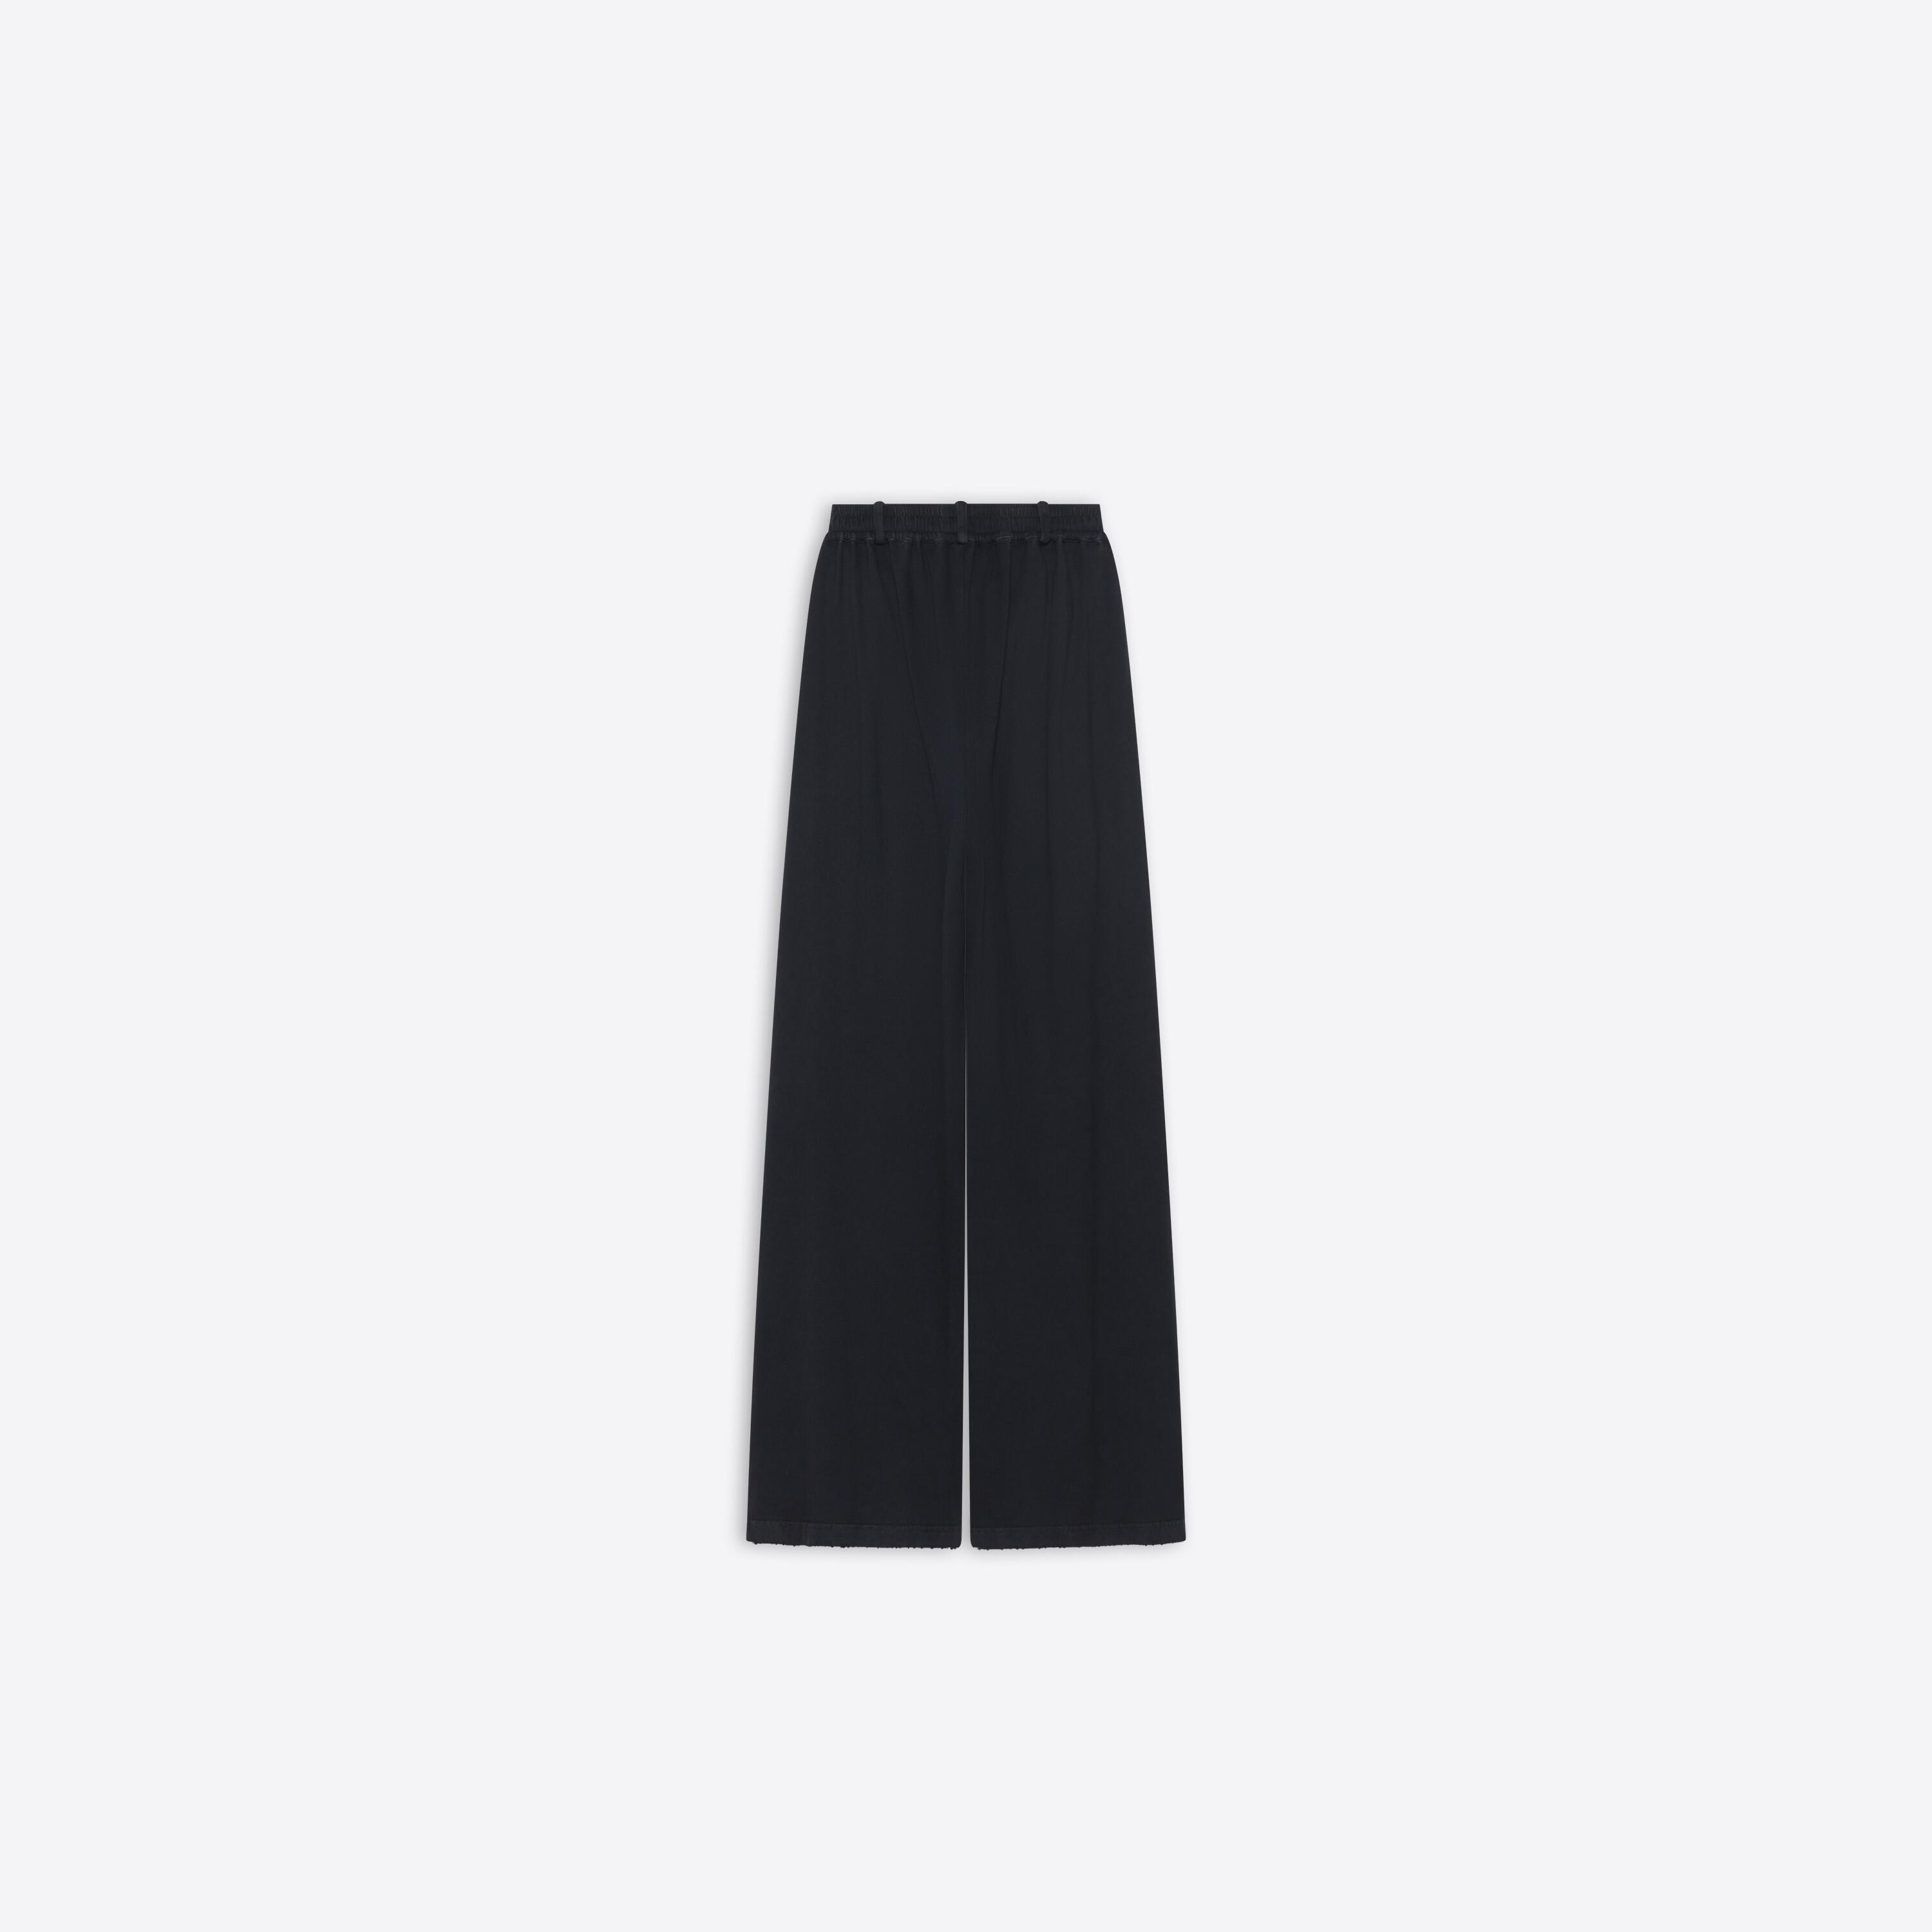 Oversize Worn-Out Pants 1